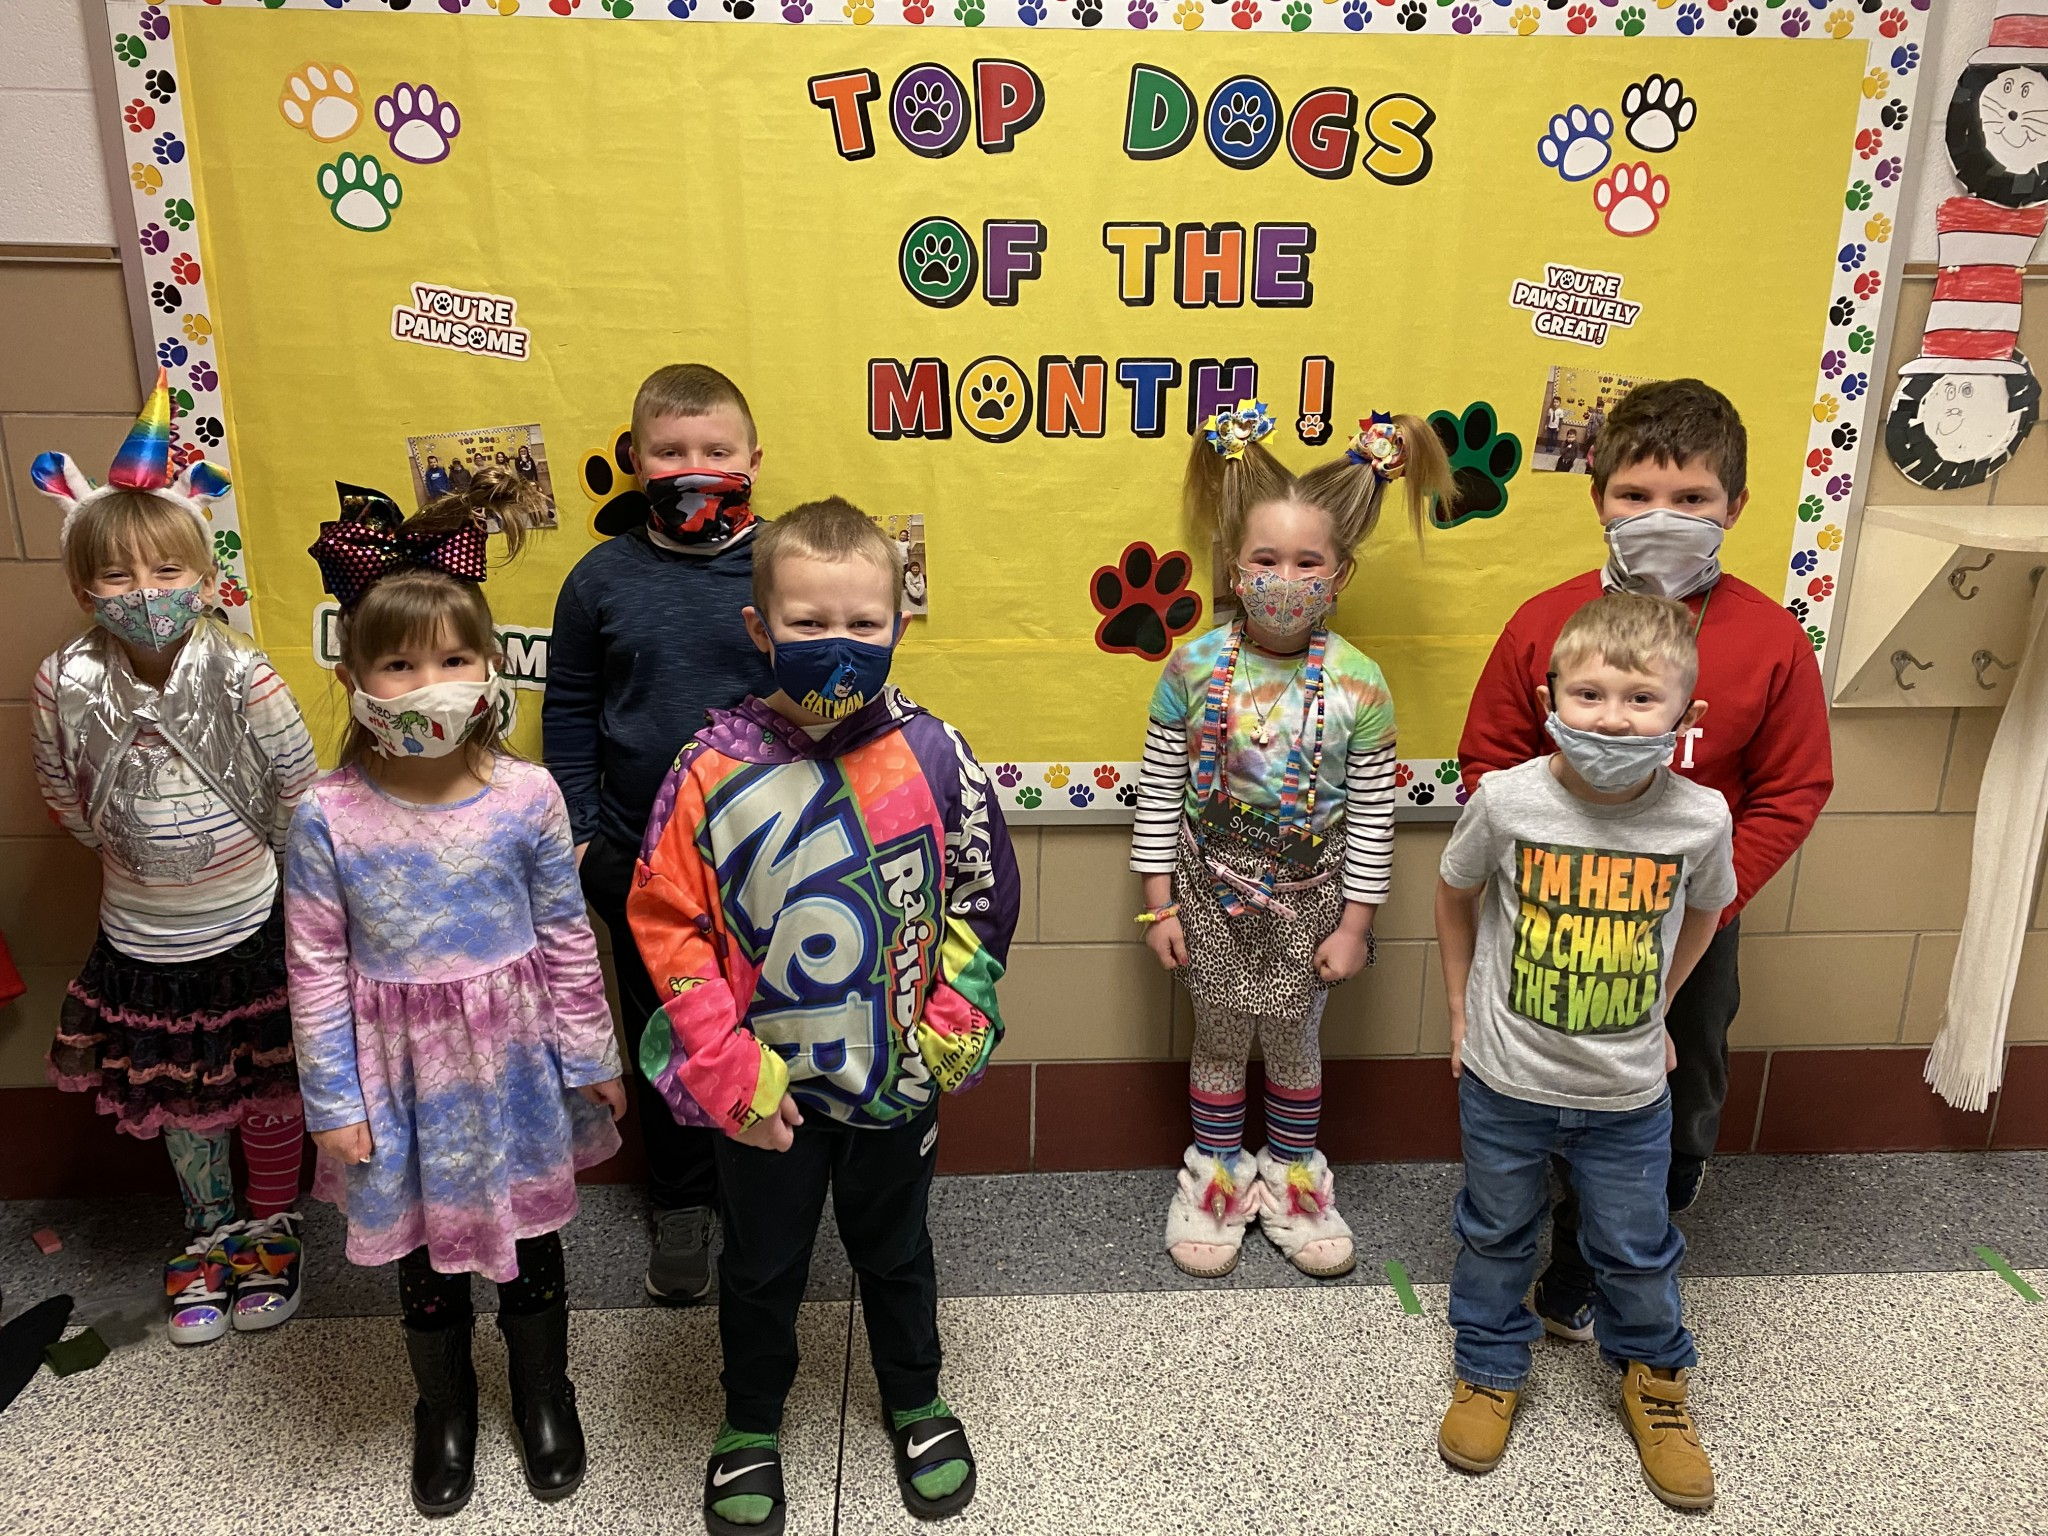 R.C. Waters kindergarten top Class Dojo winners for the month of February include (back left to right) Cara Rollheiser, Jack Behnke, Sydney Tymiak, and Grant Leist; (front left to right) Makayla Forshey, Cylus Kitchin, and Gabe Rook. (Submitted photo)